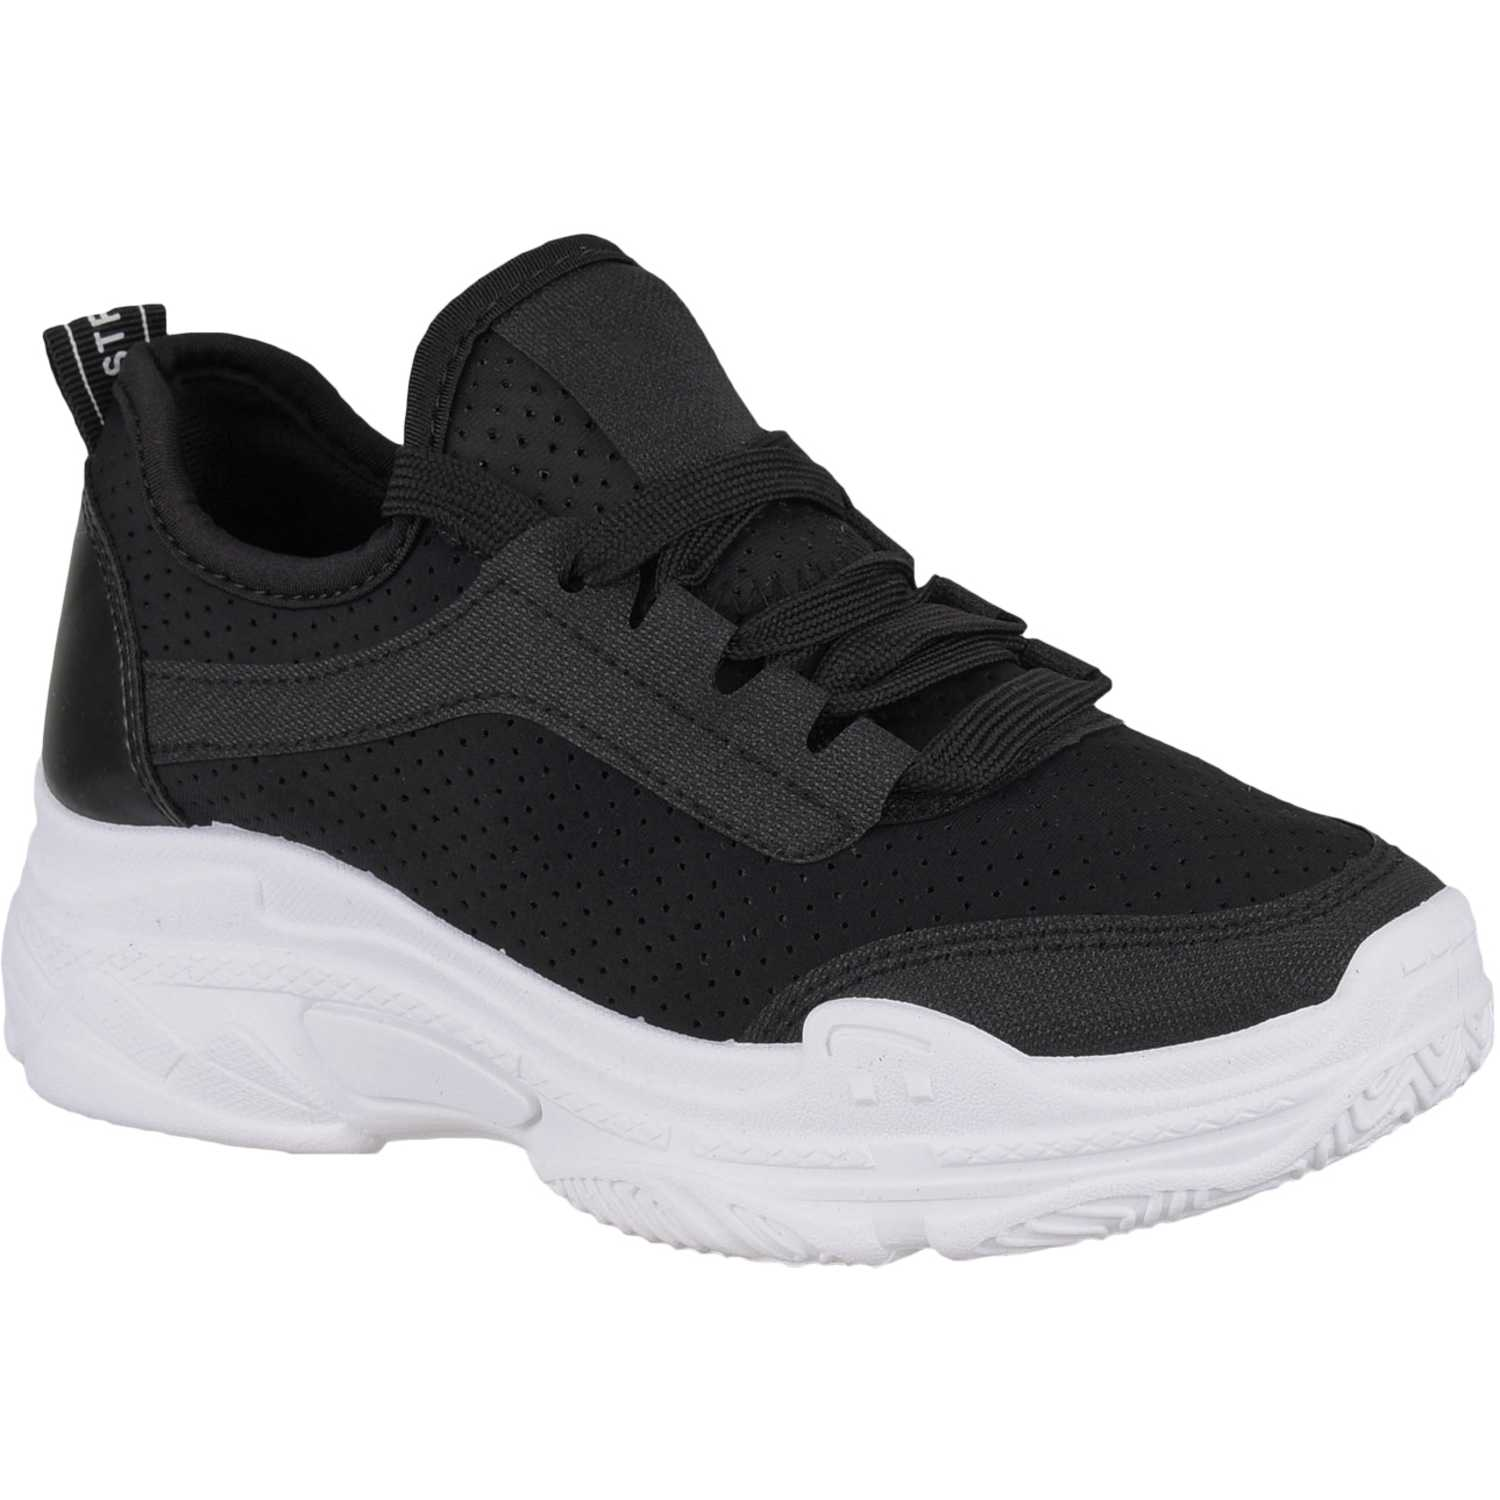 Platanitos z 4243 Negro Zapatillas Fashion